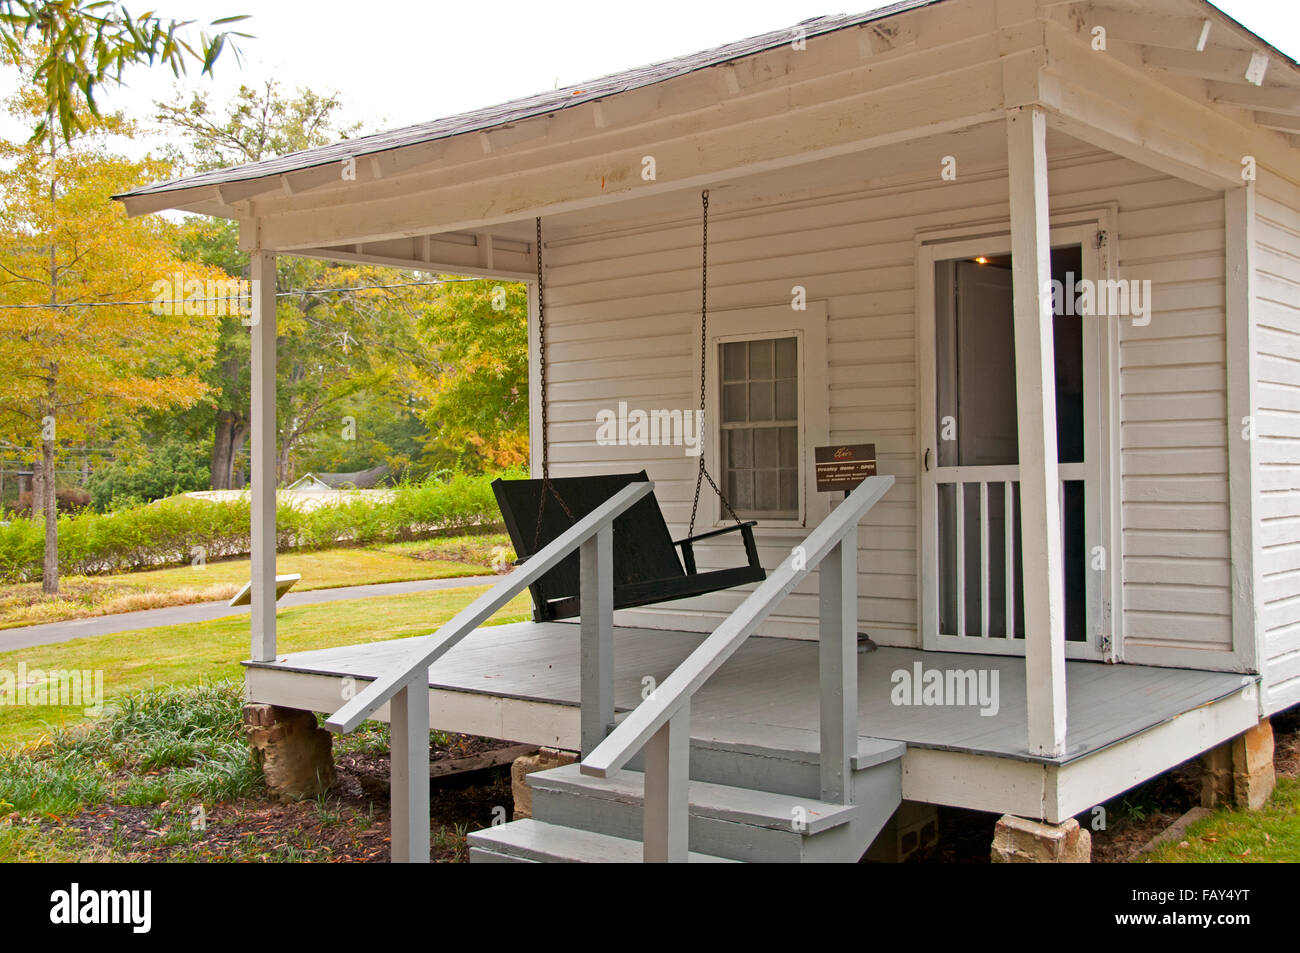 Elvis Presley's birthplace house in Tupelo, Mississippi - Stock Image